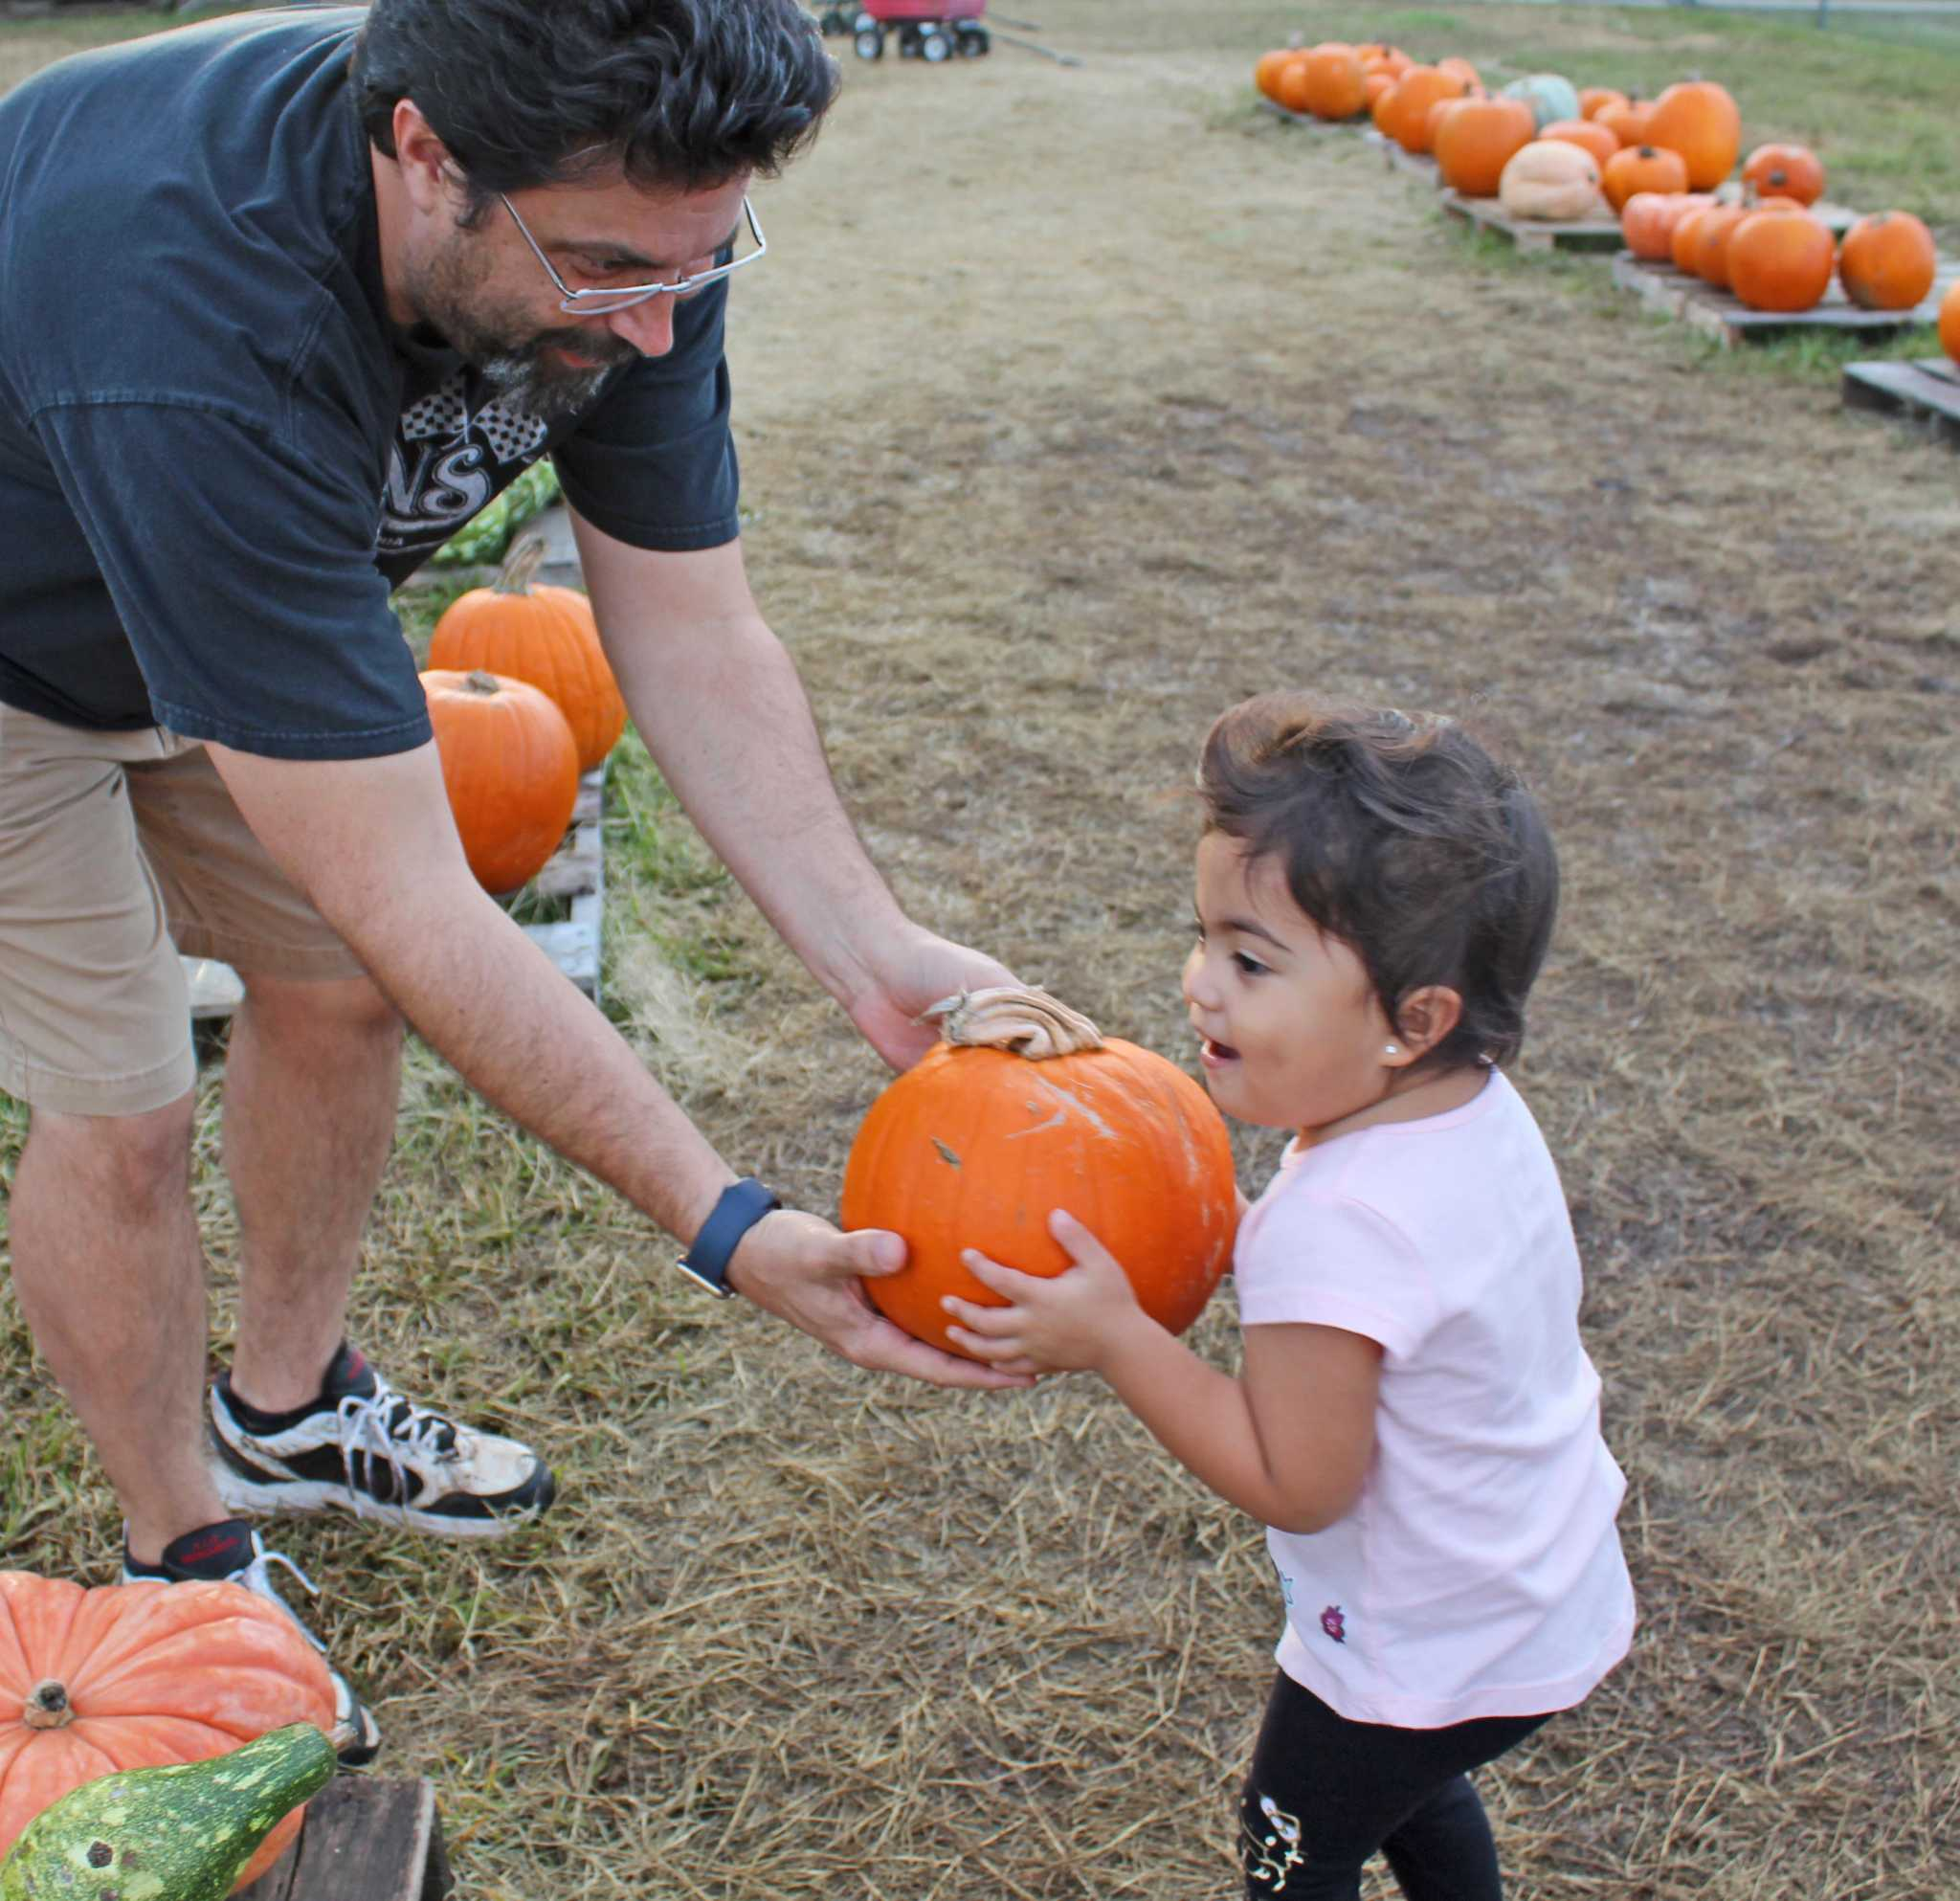 Where to find pumpkin patches around houston | mommypoppins.